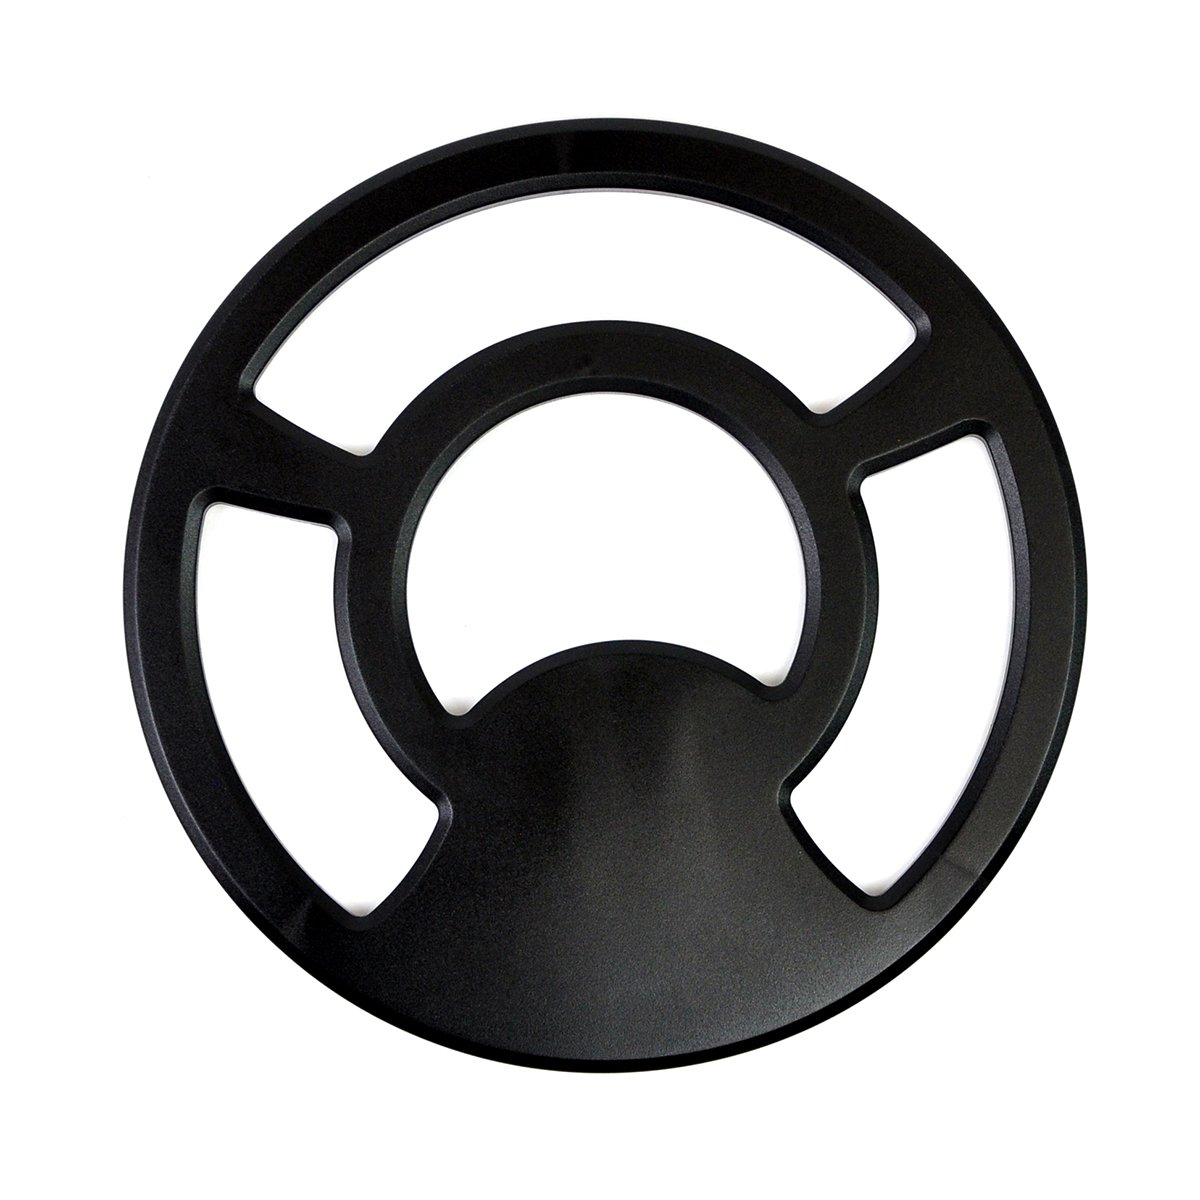 Minelab Skidplate Concentric Spare Garden Accessory, 9-Inch